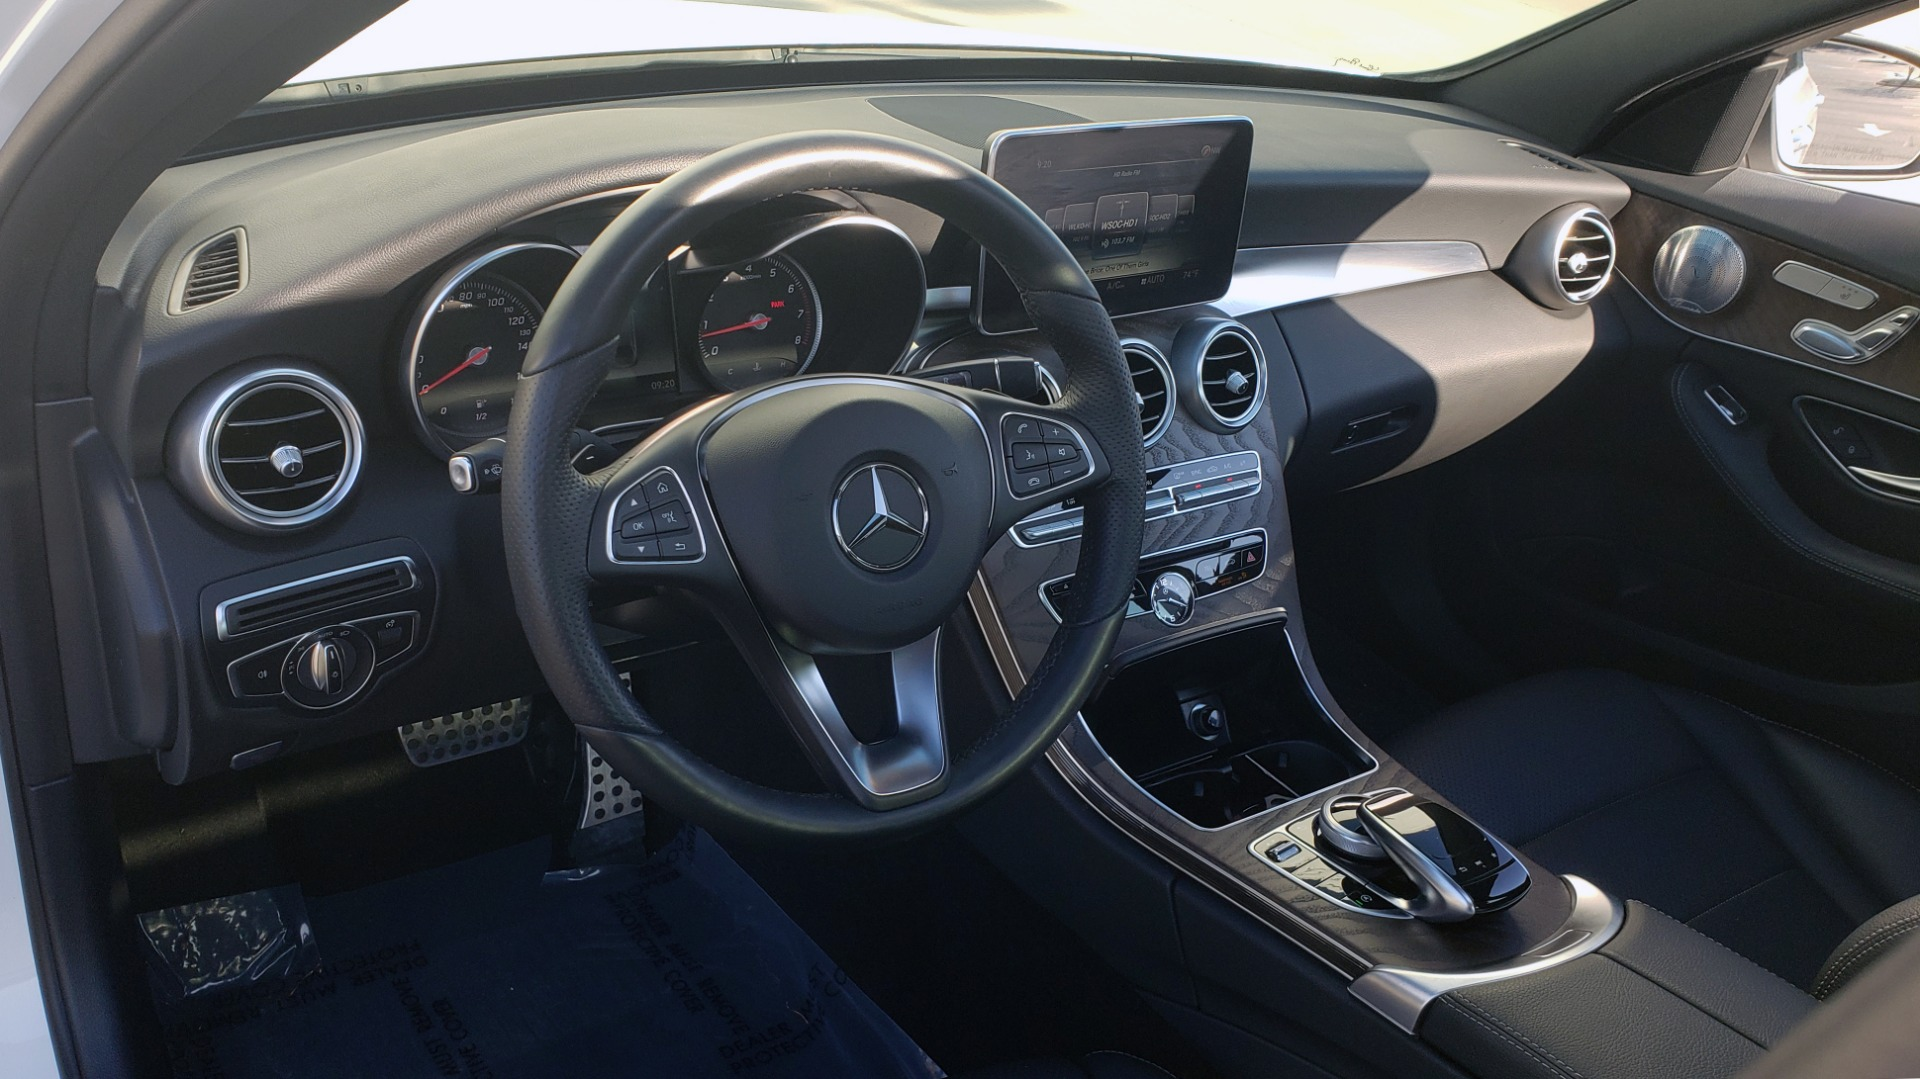 Used 2018 Mercedes-Benz C-Class C 300 PREMIUM / NAV / PANO-ROOF / AMG LINE / MULTIMEDIA for sale $28,235 at Formula Imports in Charlotte NC 28227 35